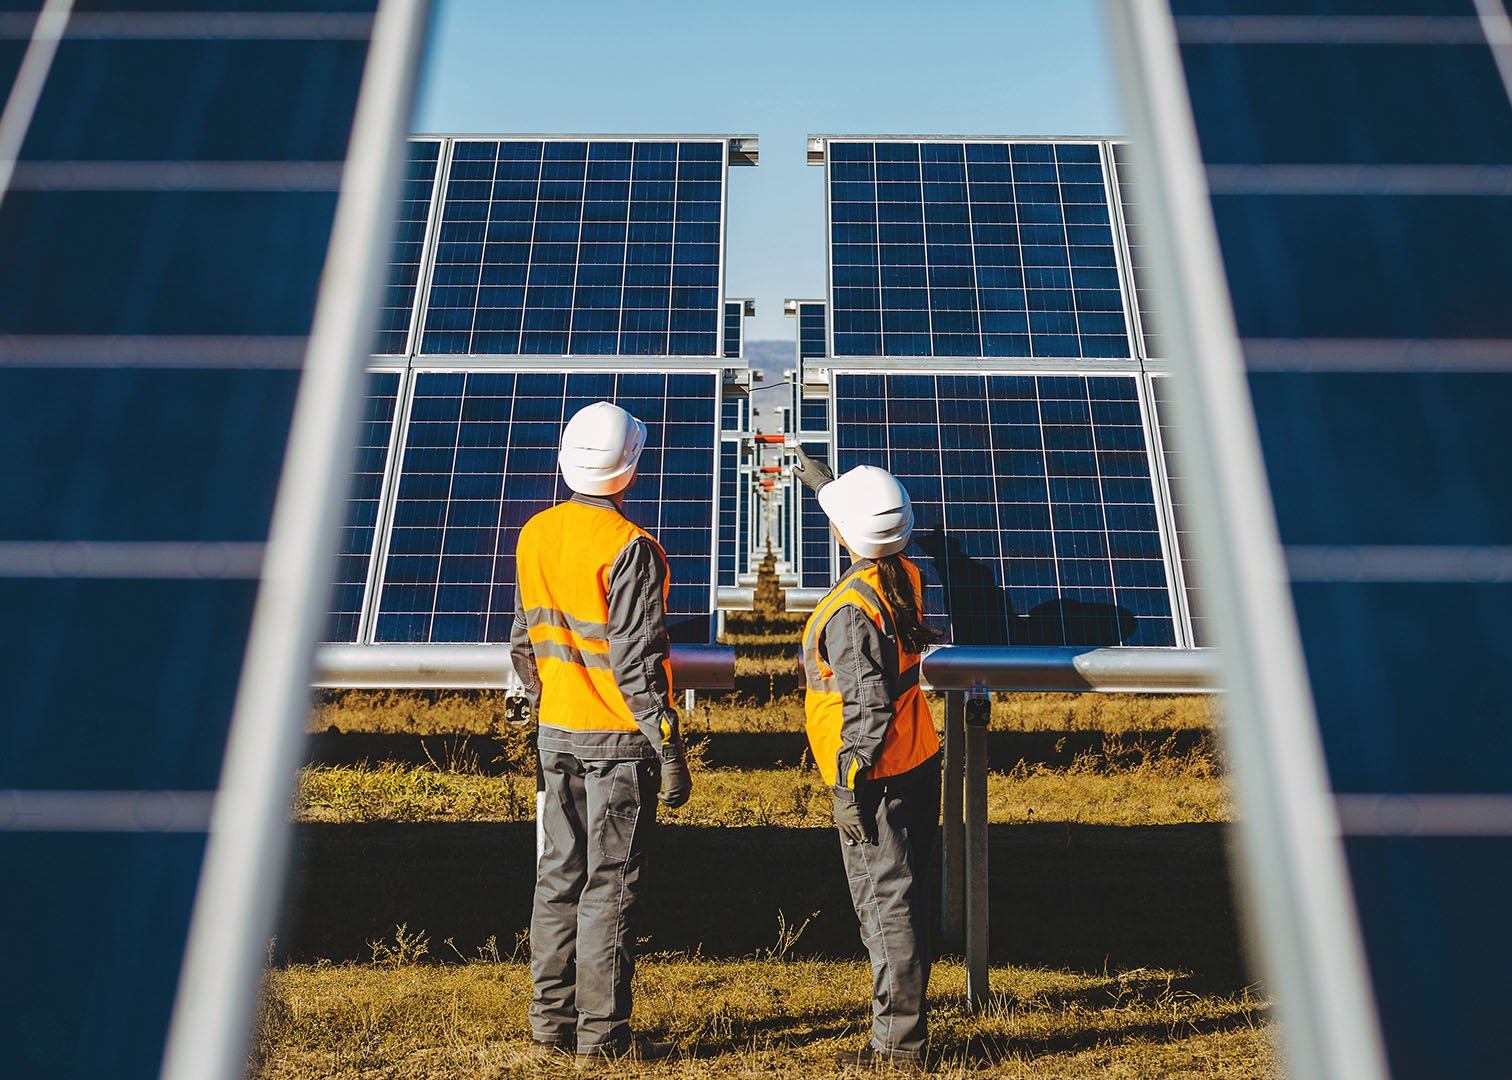 Scalability with a strong technical foundation in renewable energy